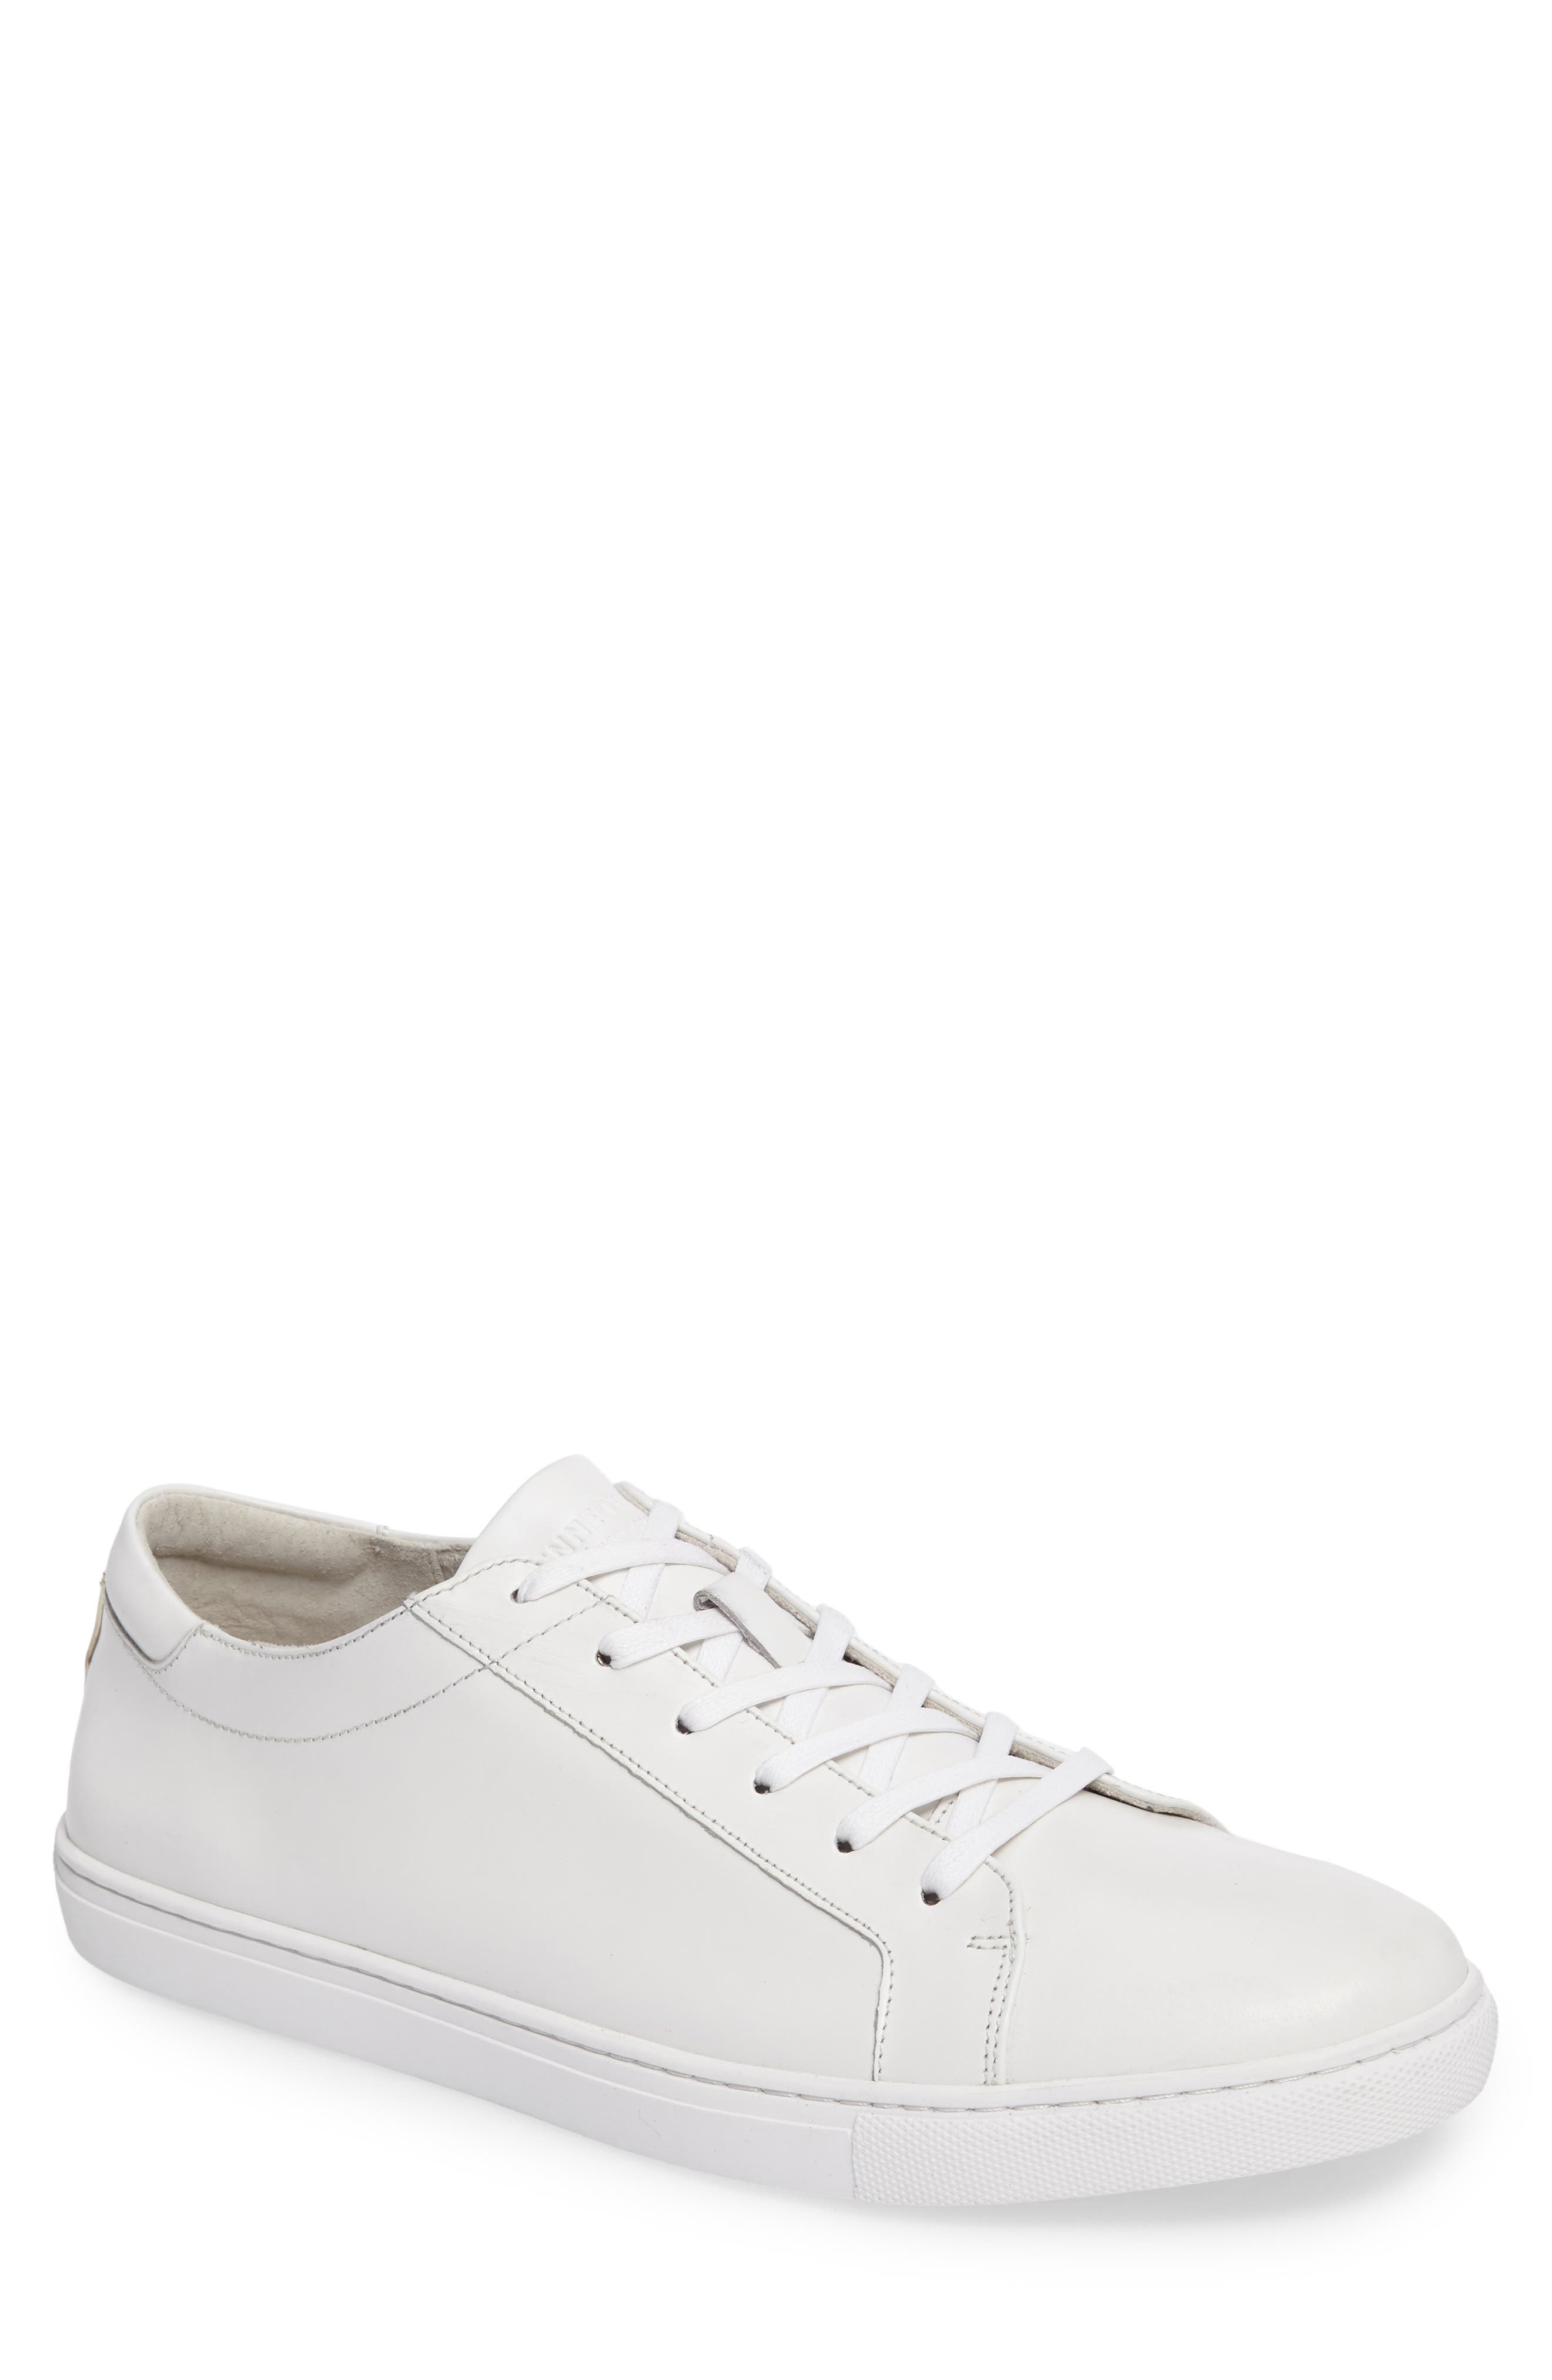 Alternate Image 1 Selected - Kenneth Cole New York Kam Sneaker (Men)